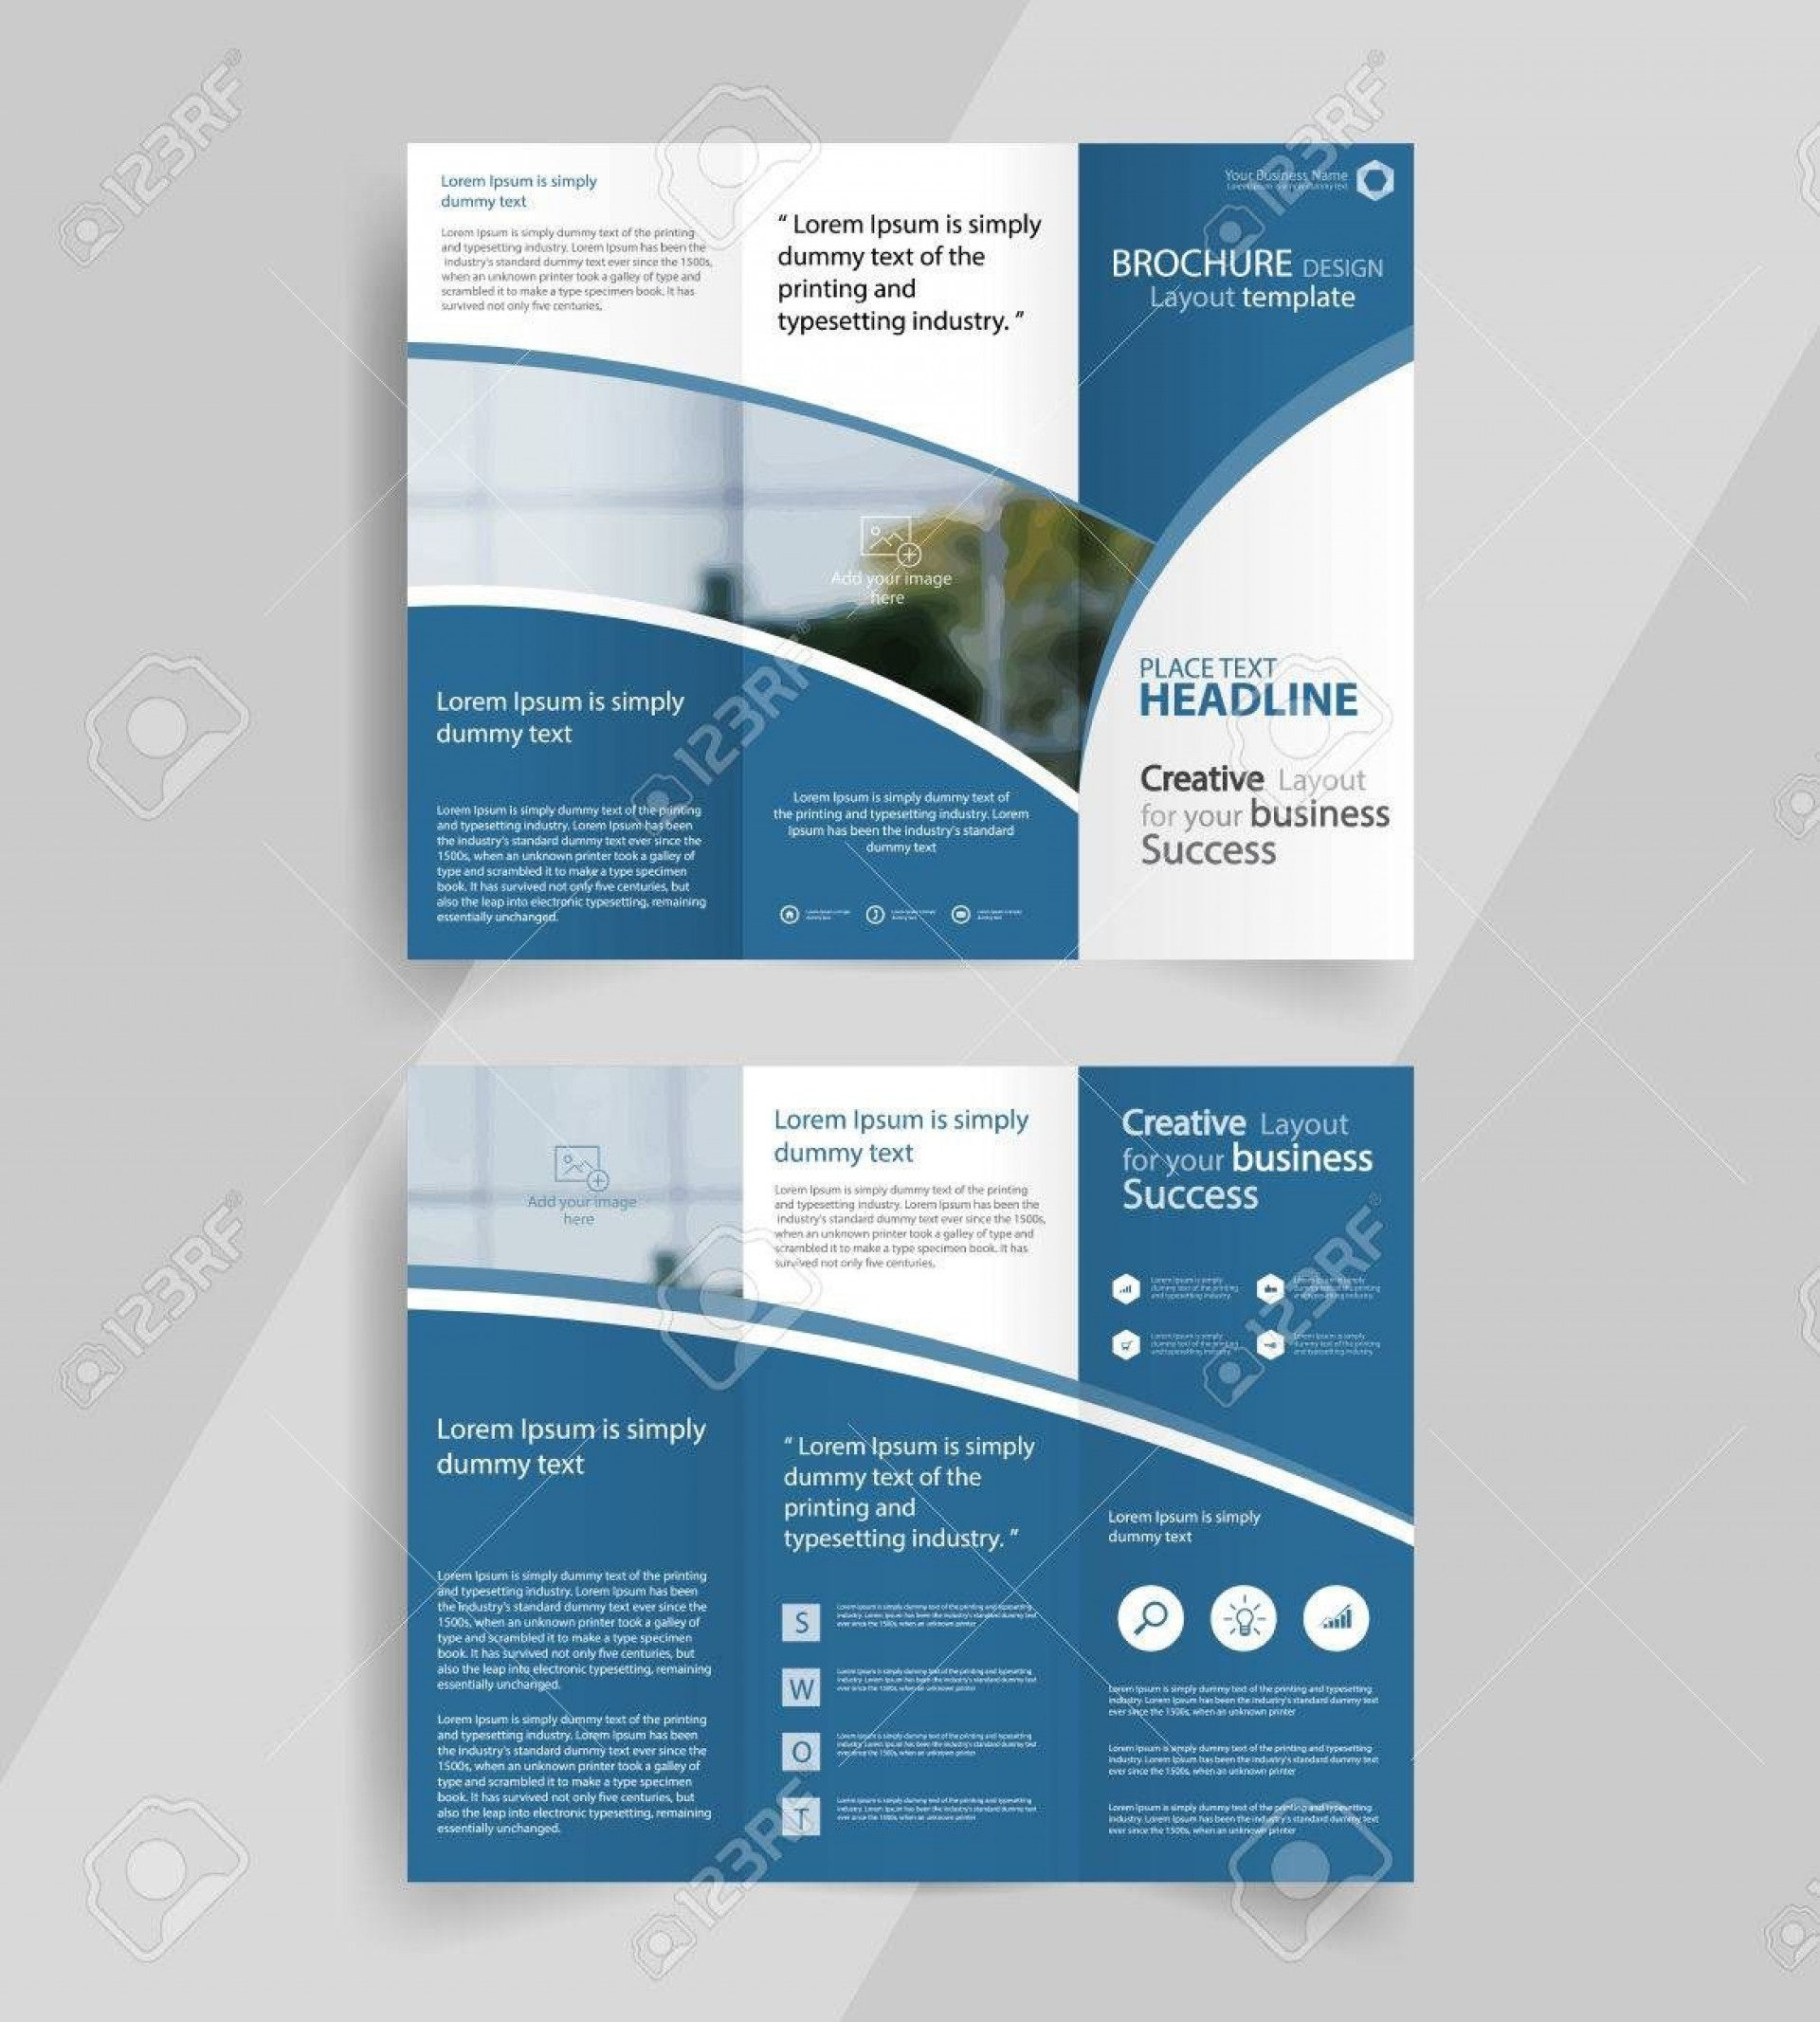 001 Wondrou 3 Fold Brochure Template High Def  Templates For Free1920